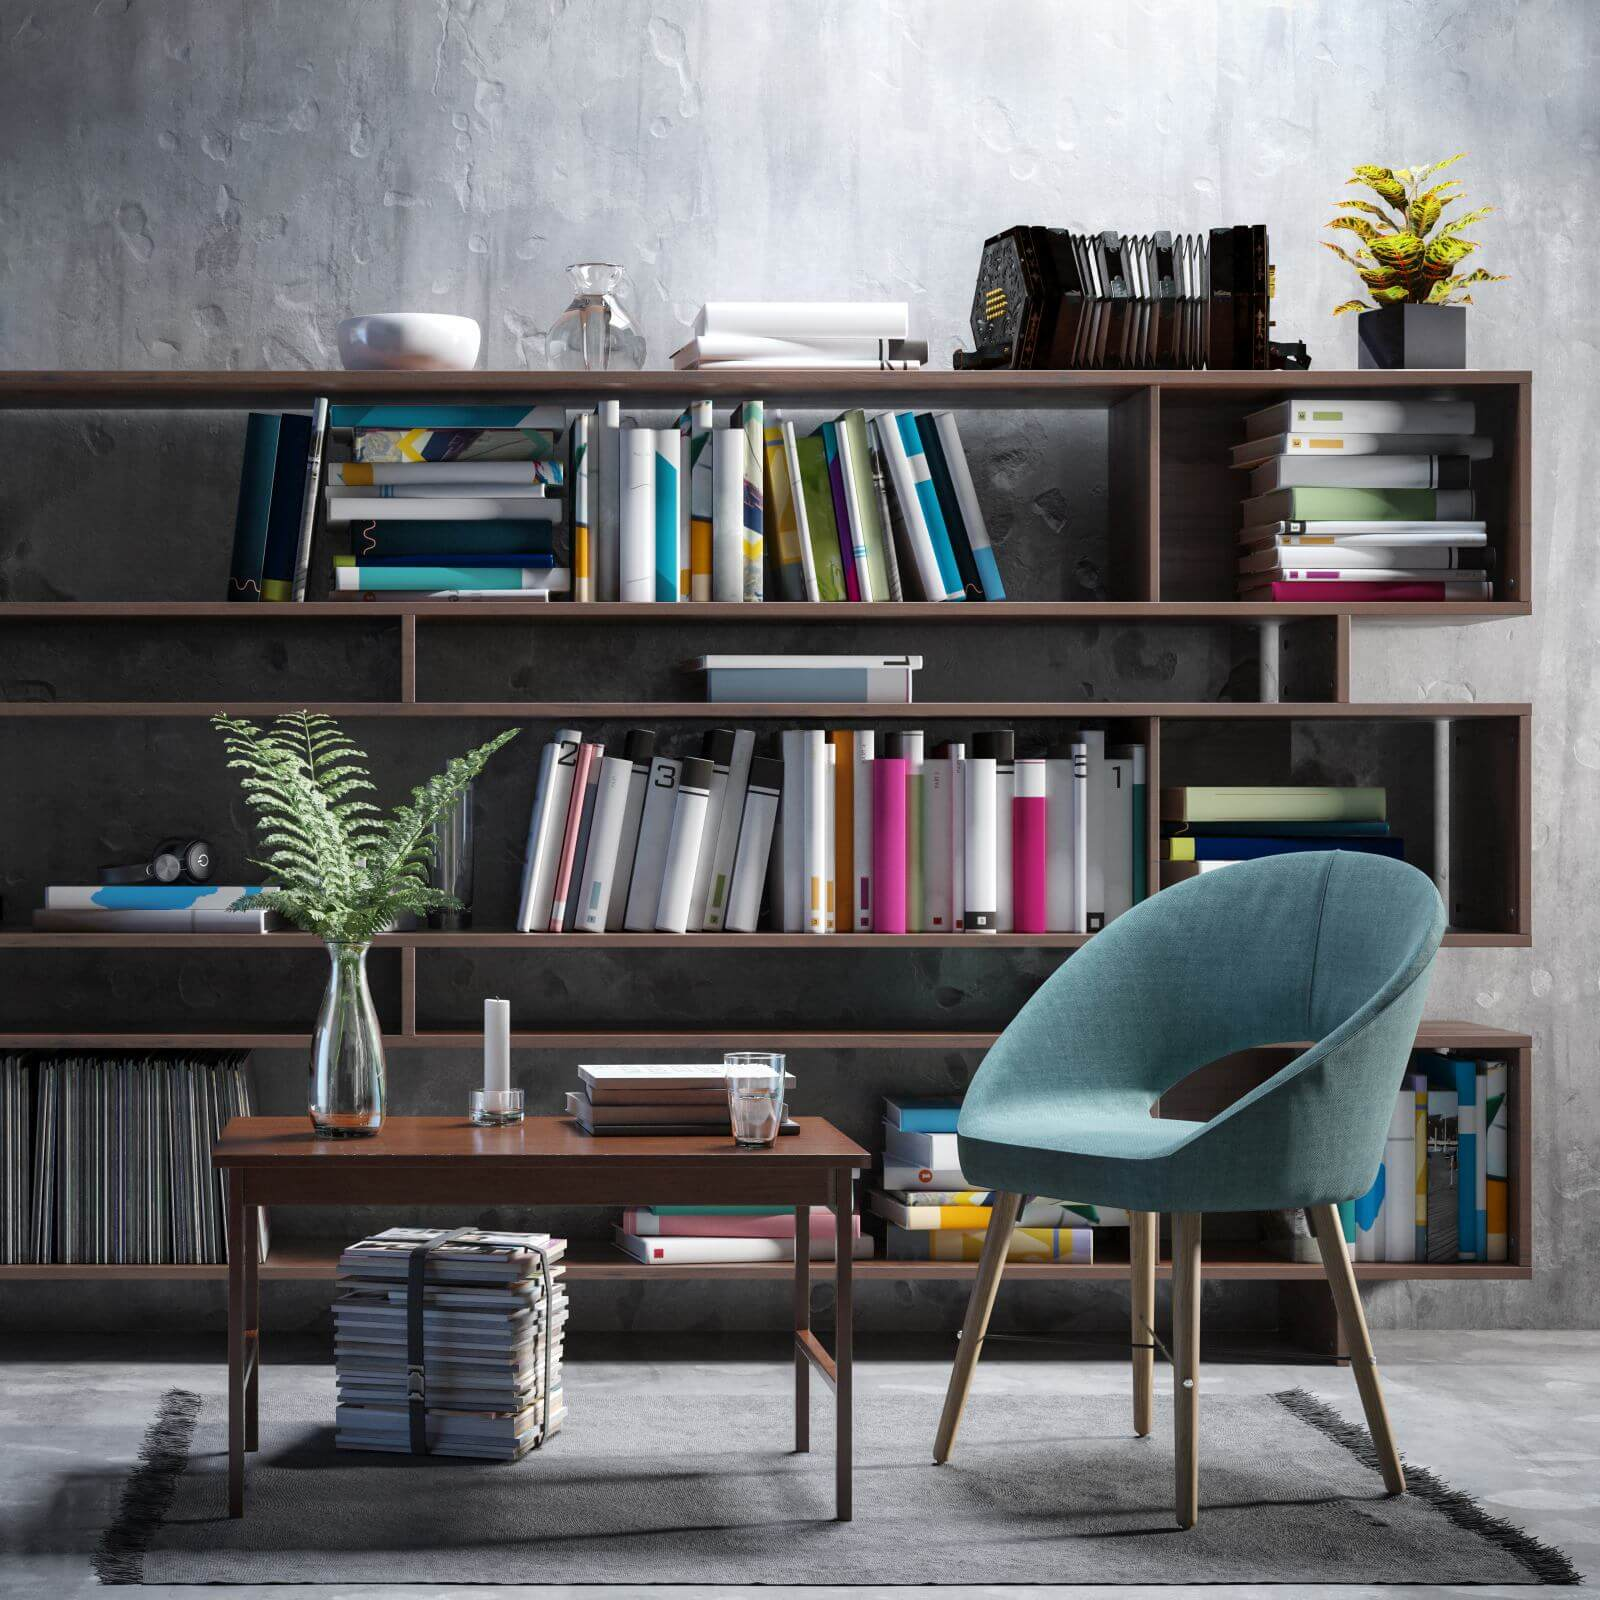 Furnishing Presentation with a Bookshelf - 3d visualization